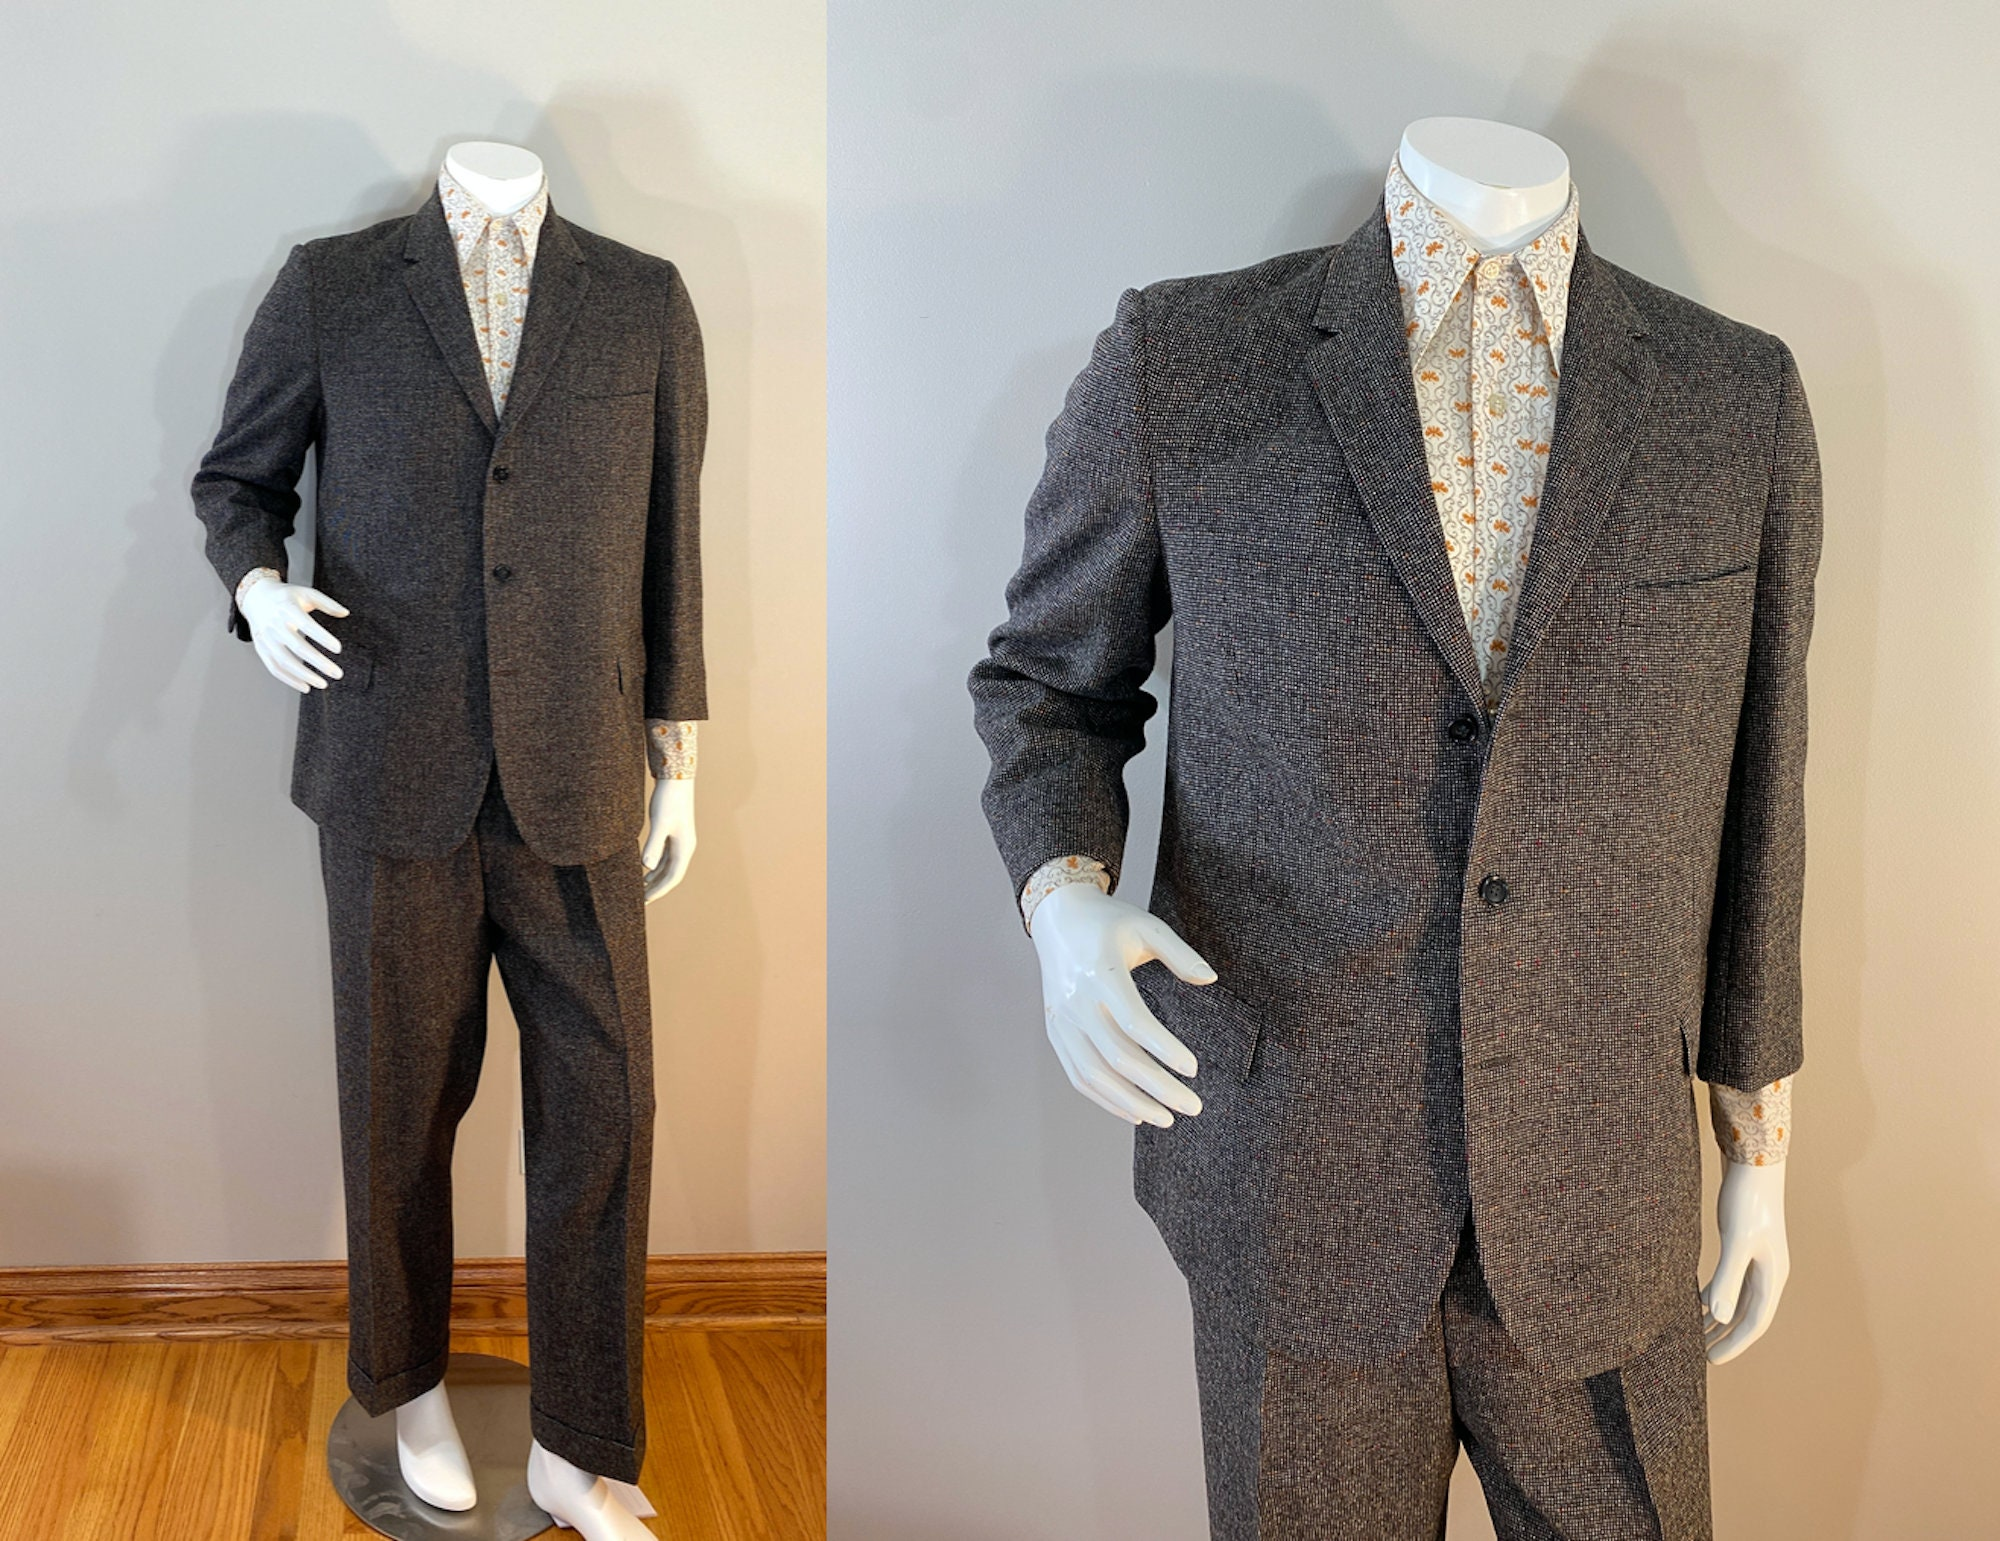 1950s Mens Suits & Sport Coats   50s Suits & Blazers Vintage 1950S Brown Flecked Wool Two Piece Suit, Pleated Trousers, Lord Taylor Tailored By Clarks Lincoln. With Red  White Weave $225.00 AT vintagedancer.com